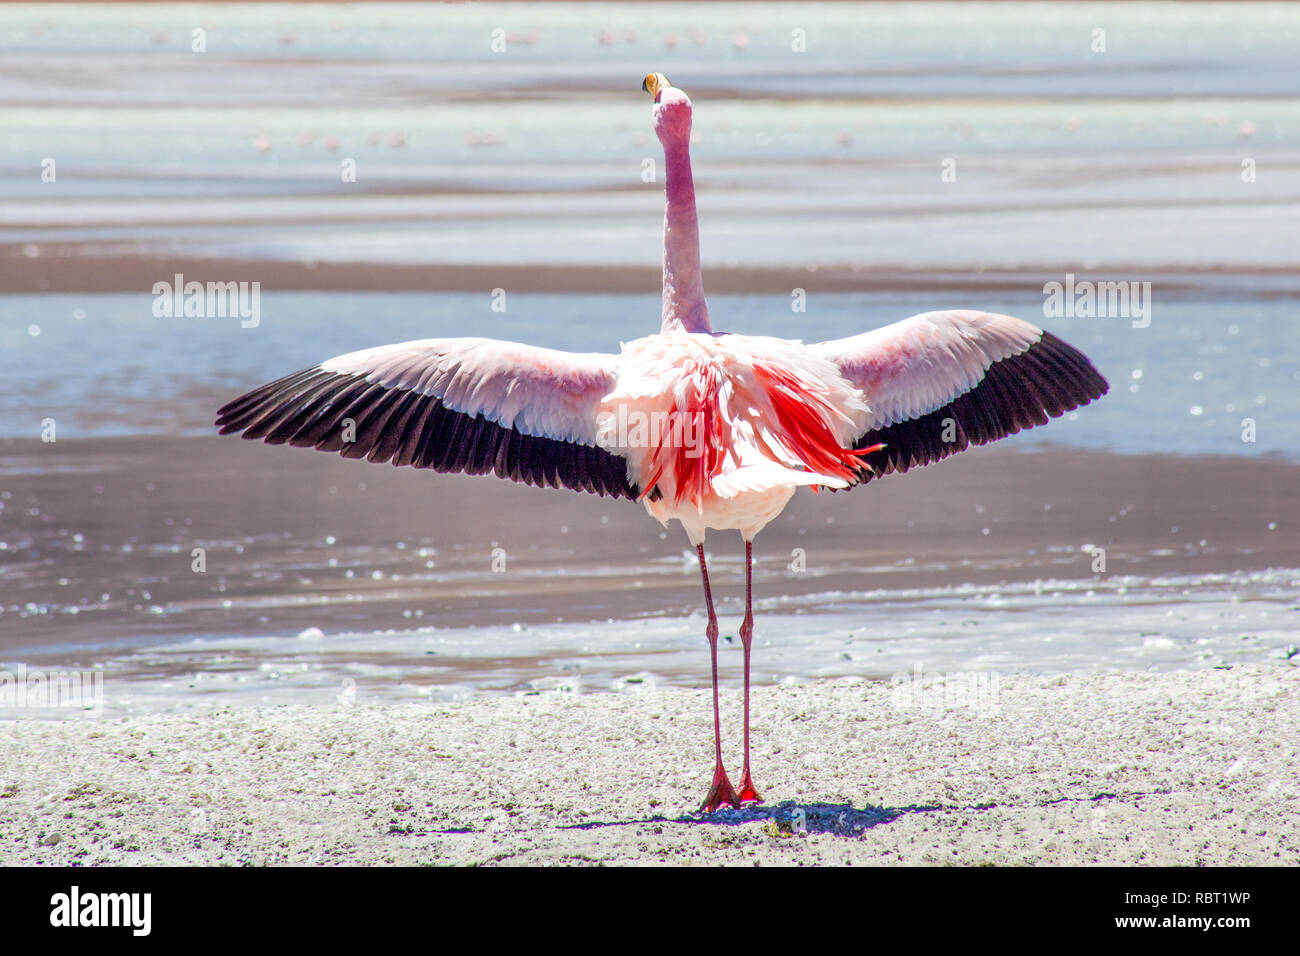 A large and colourful flamingo stands on tip toes with his wings fully outstretched and shouts his message to anyone listening. - Stock Image